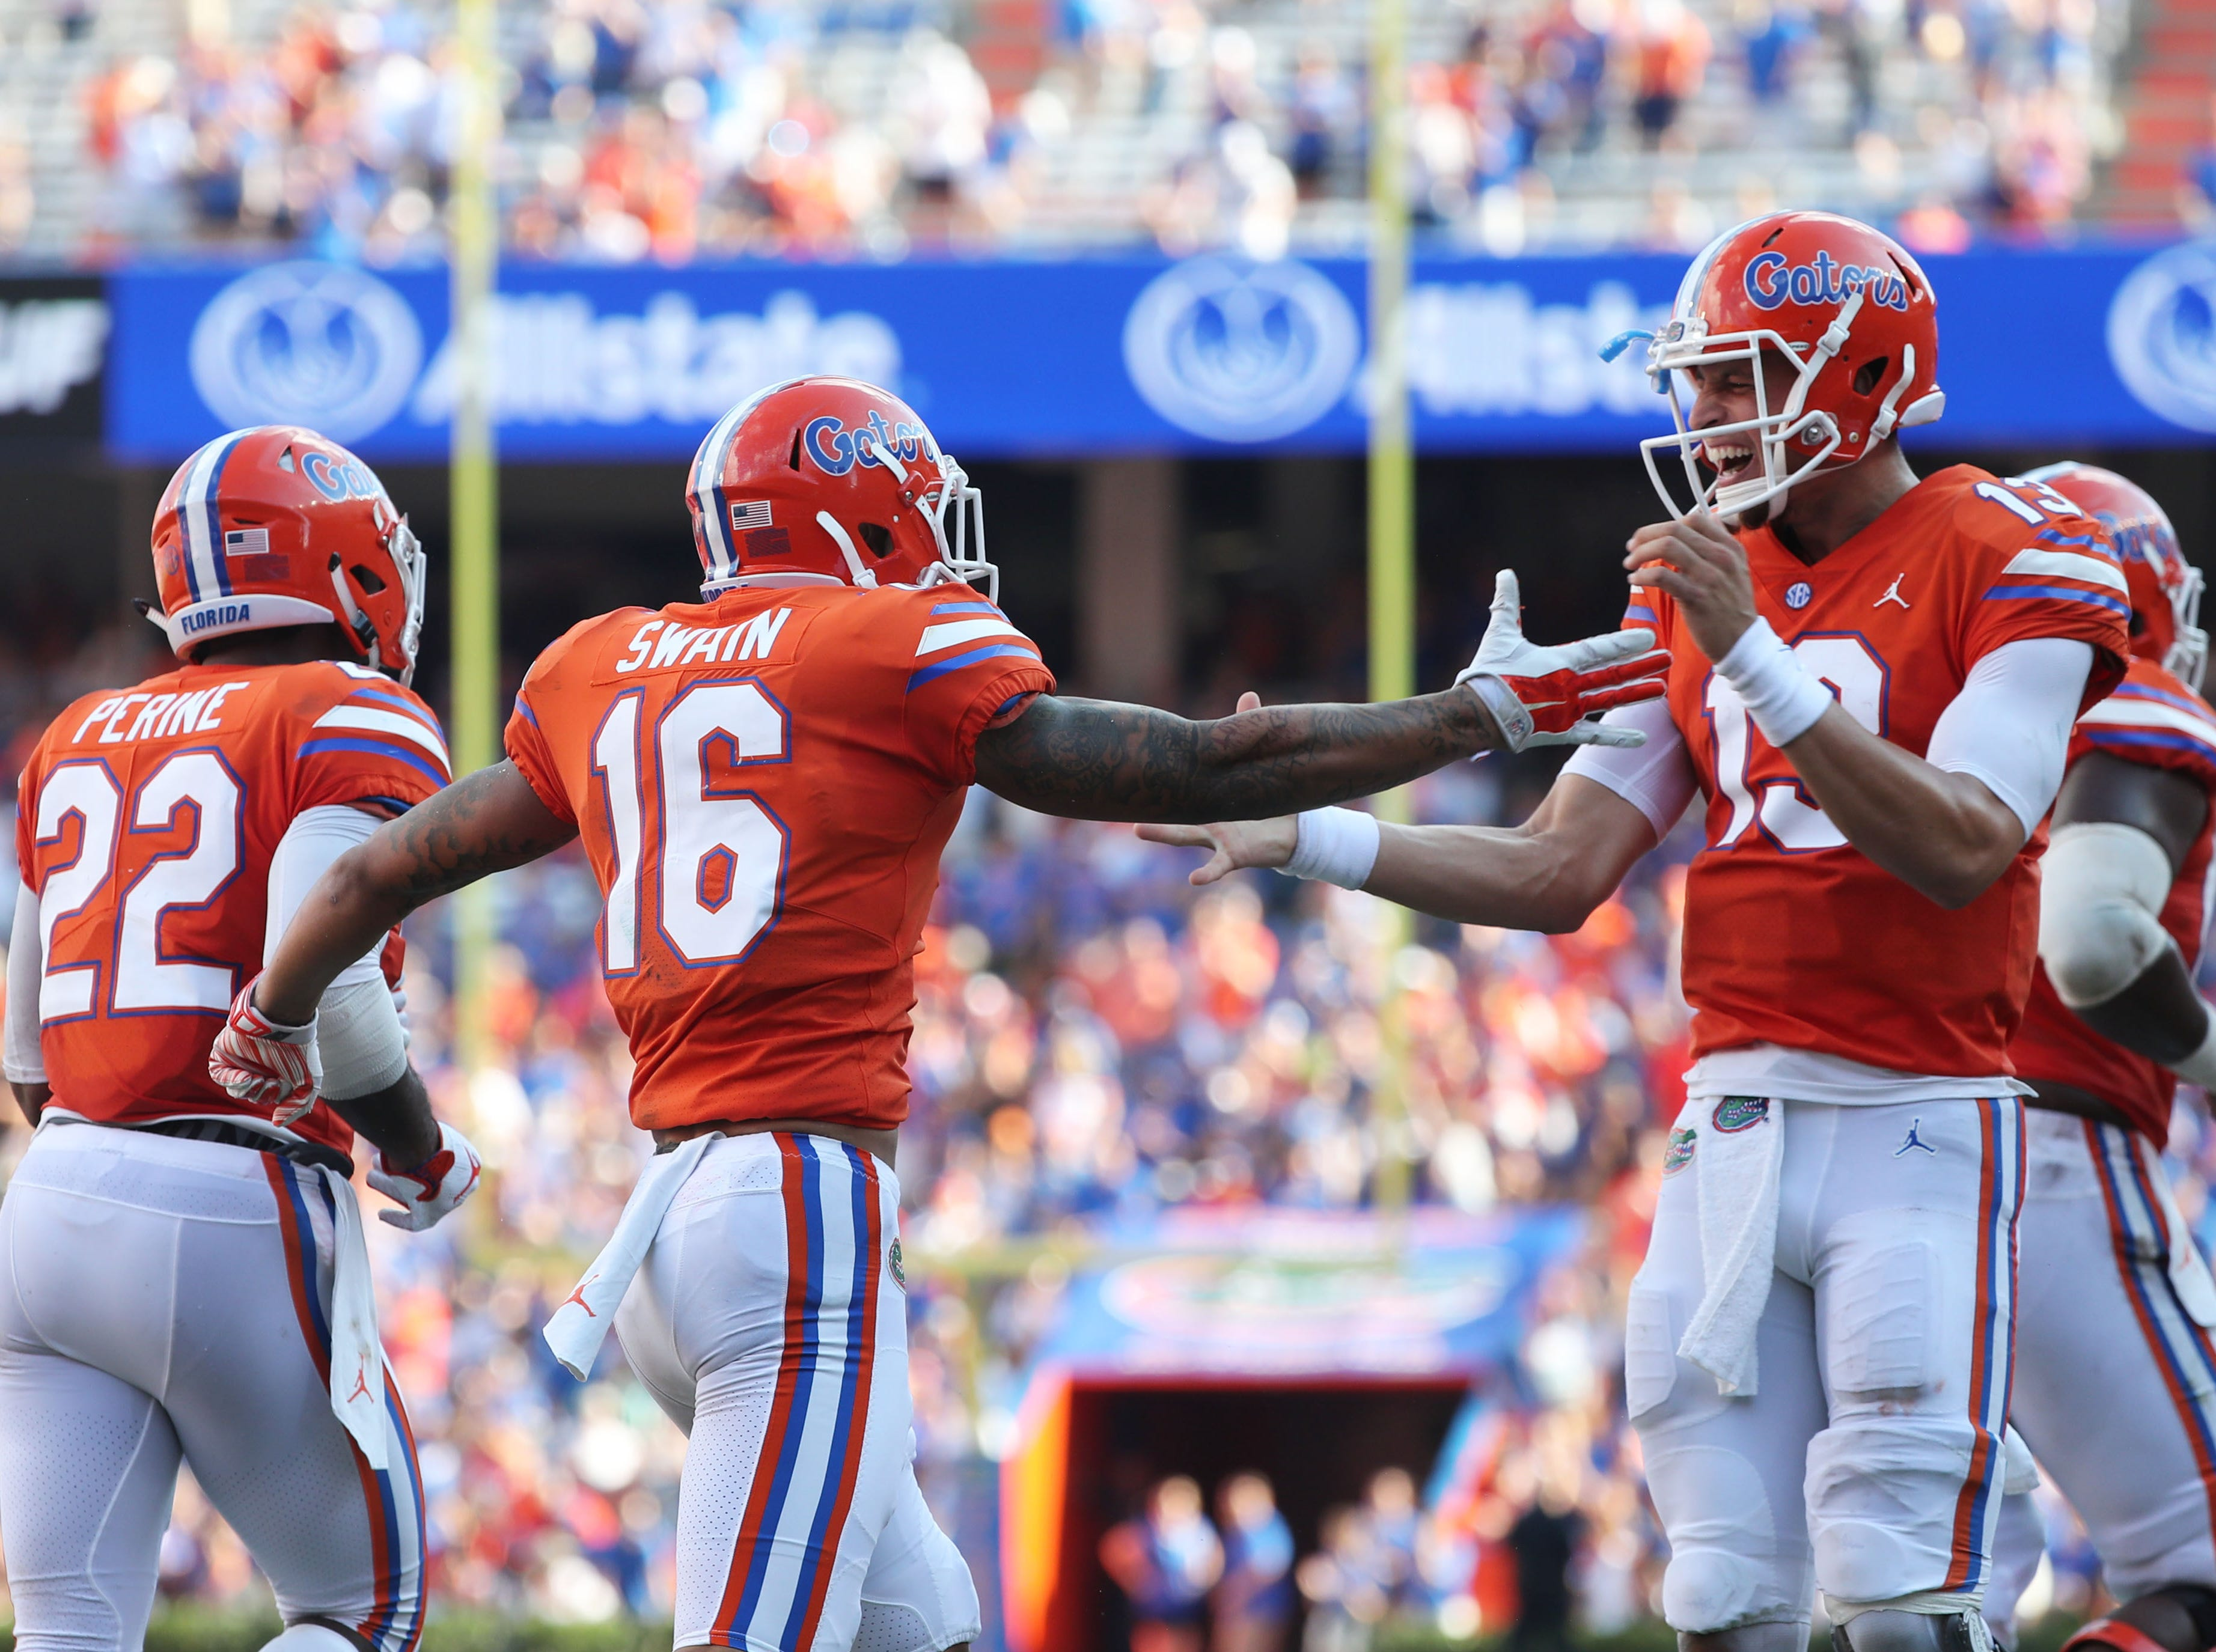 Sep 15, 2018; Gainesville, FL, USA; Florida Gators wide receiver Freddie Swain (16) is congratulated by Florida Gators quarterback Feleipe Franks (13) as he catches the ball for a touchdown against the Colorado State Rams during the second quarter at Ben Hill Griffin Stadium. Mandatory Credit: Kim Klement-USA TODAY Sports